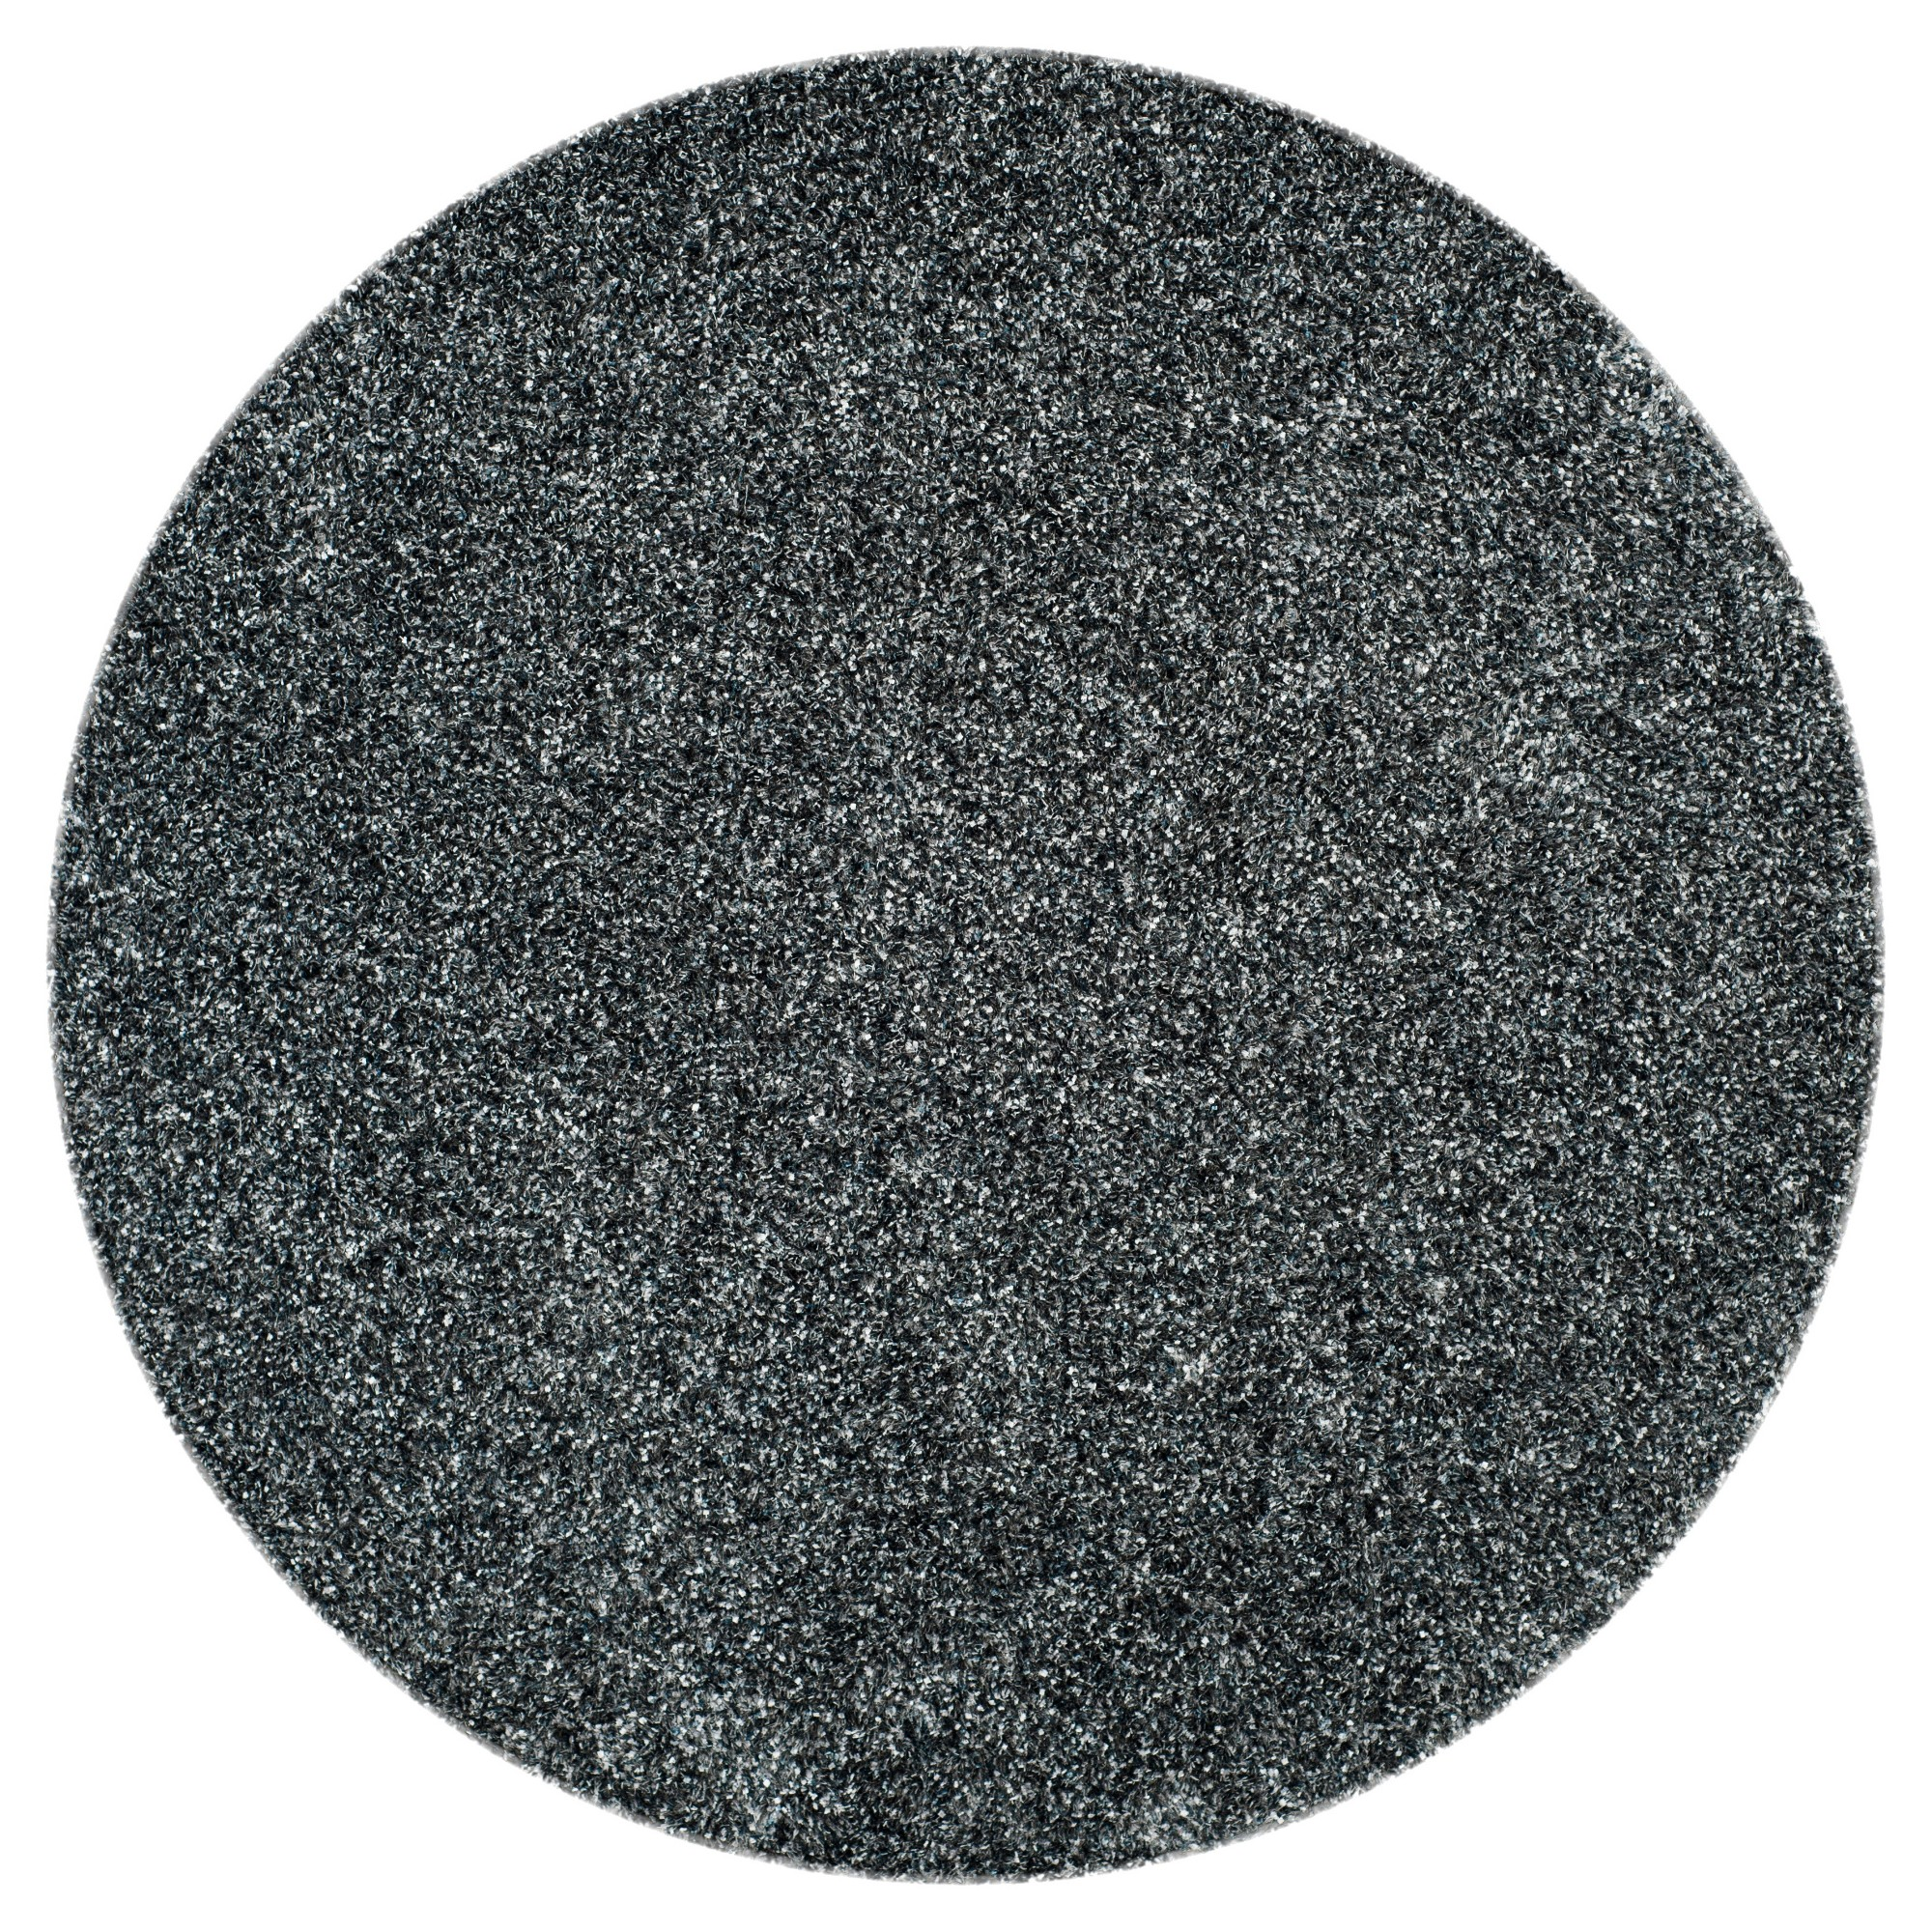 Charcoal Solid Tufted Round Area Rug 7 Round Safavieh